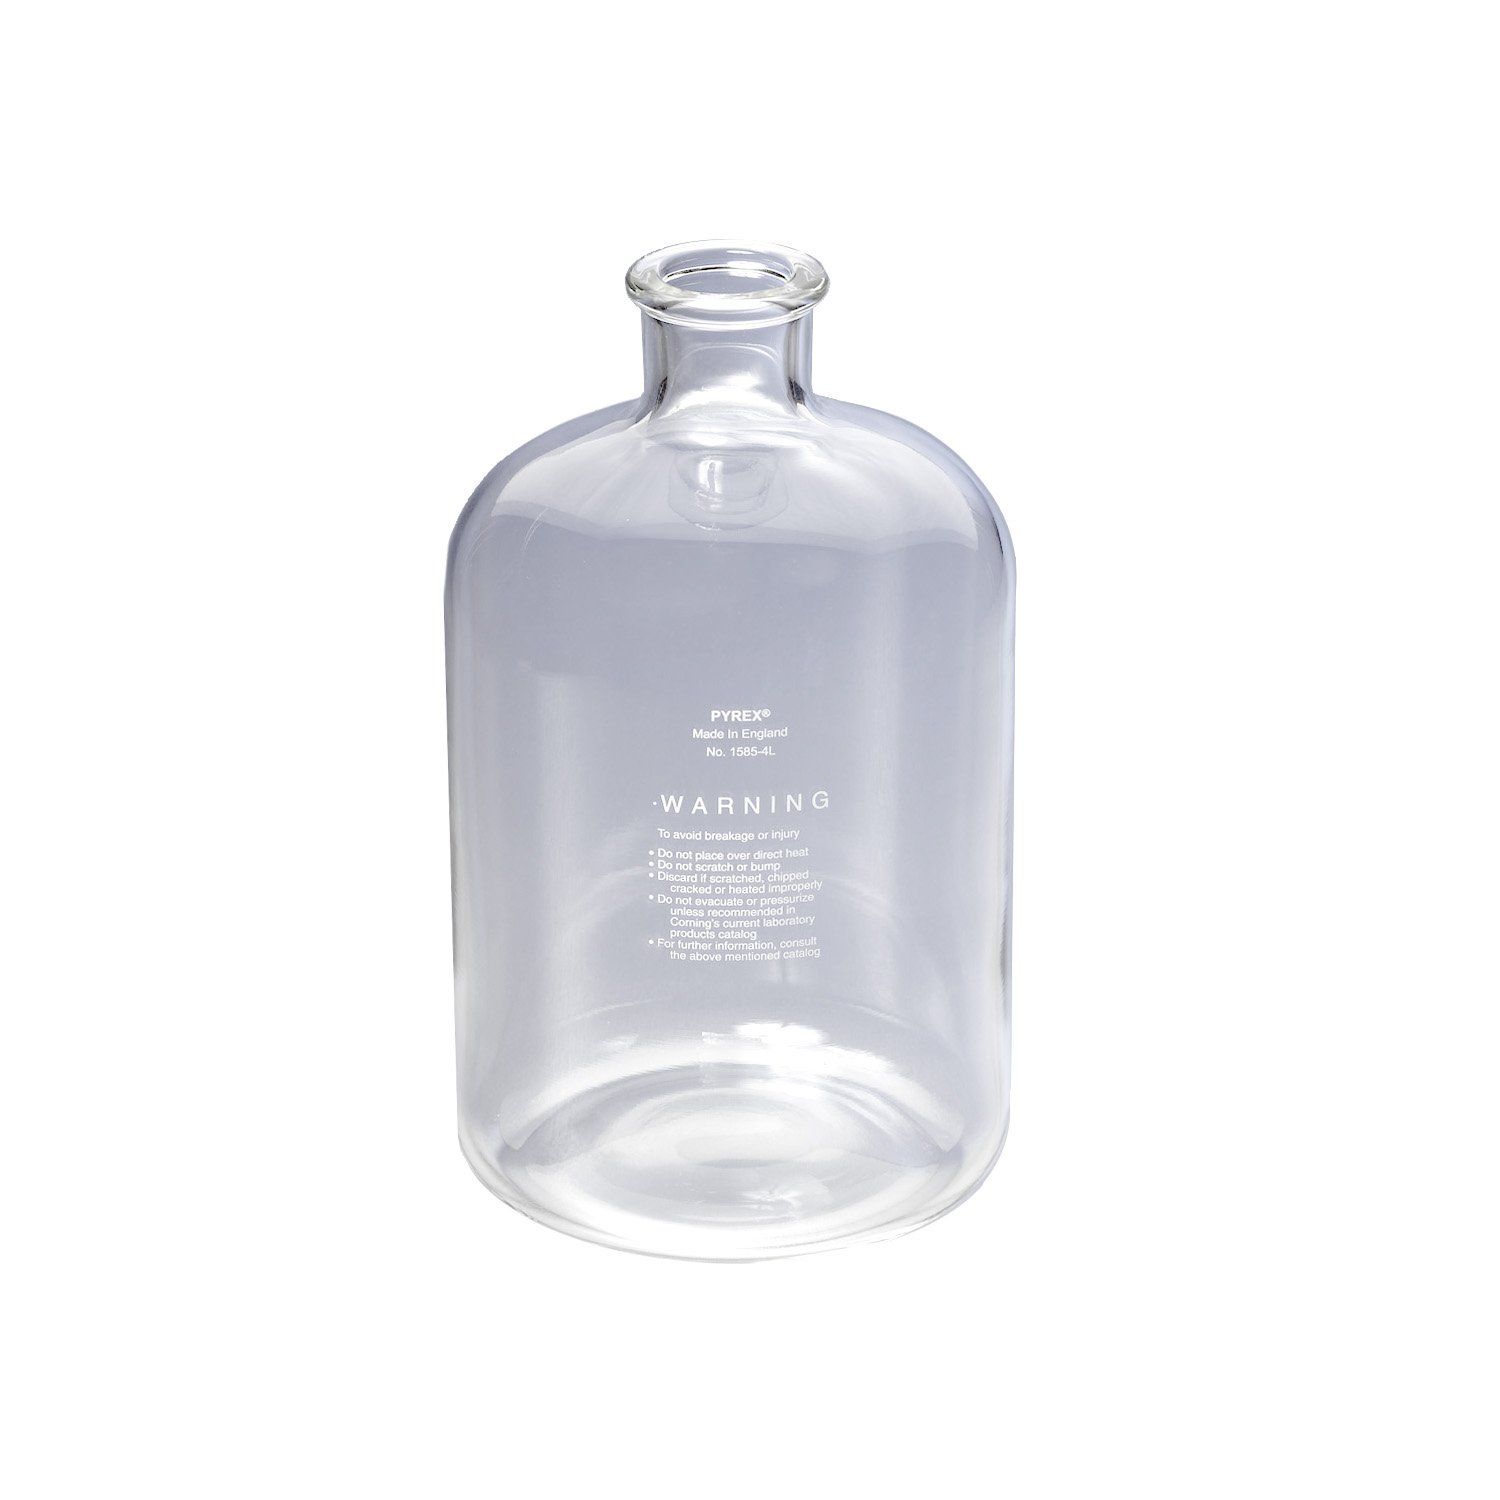 Corning Pyrex Serum Bottle 4L New arrival With Neck Tooled New product type